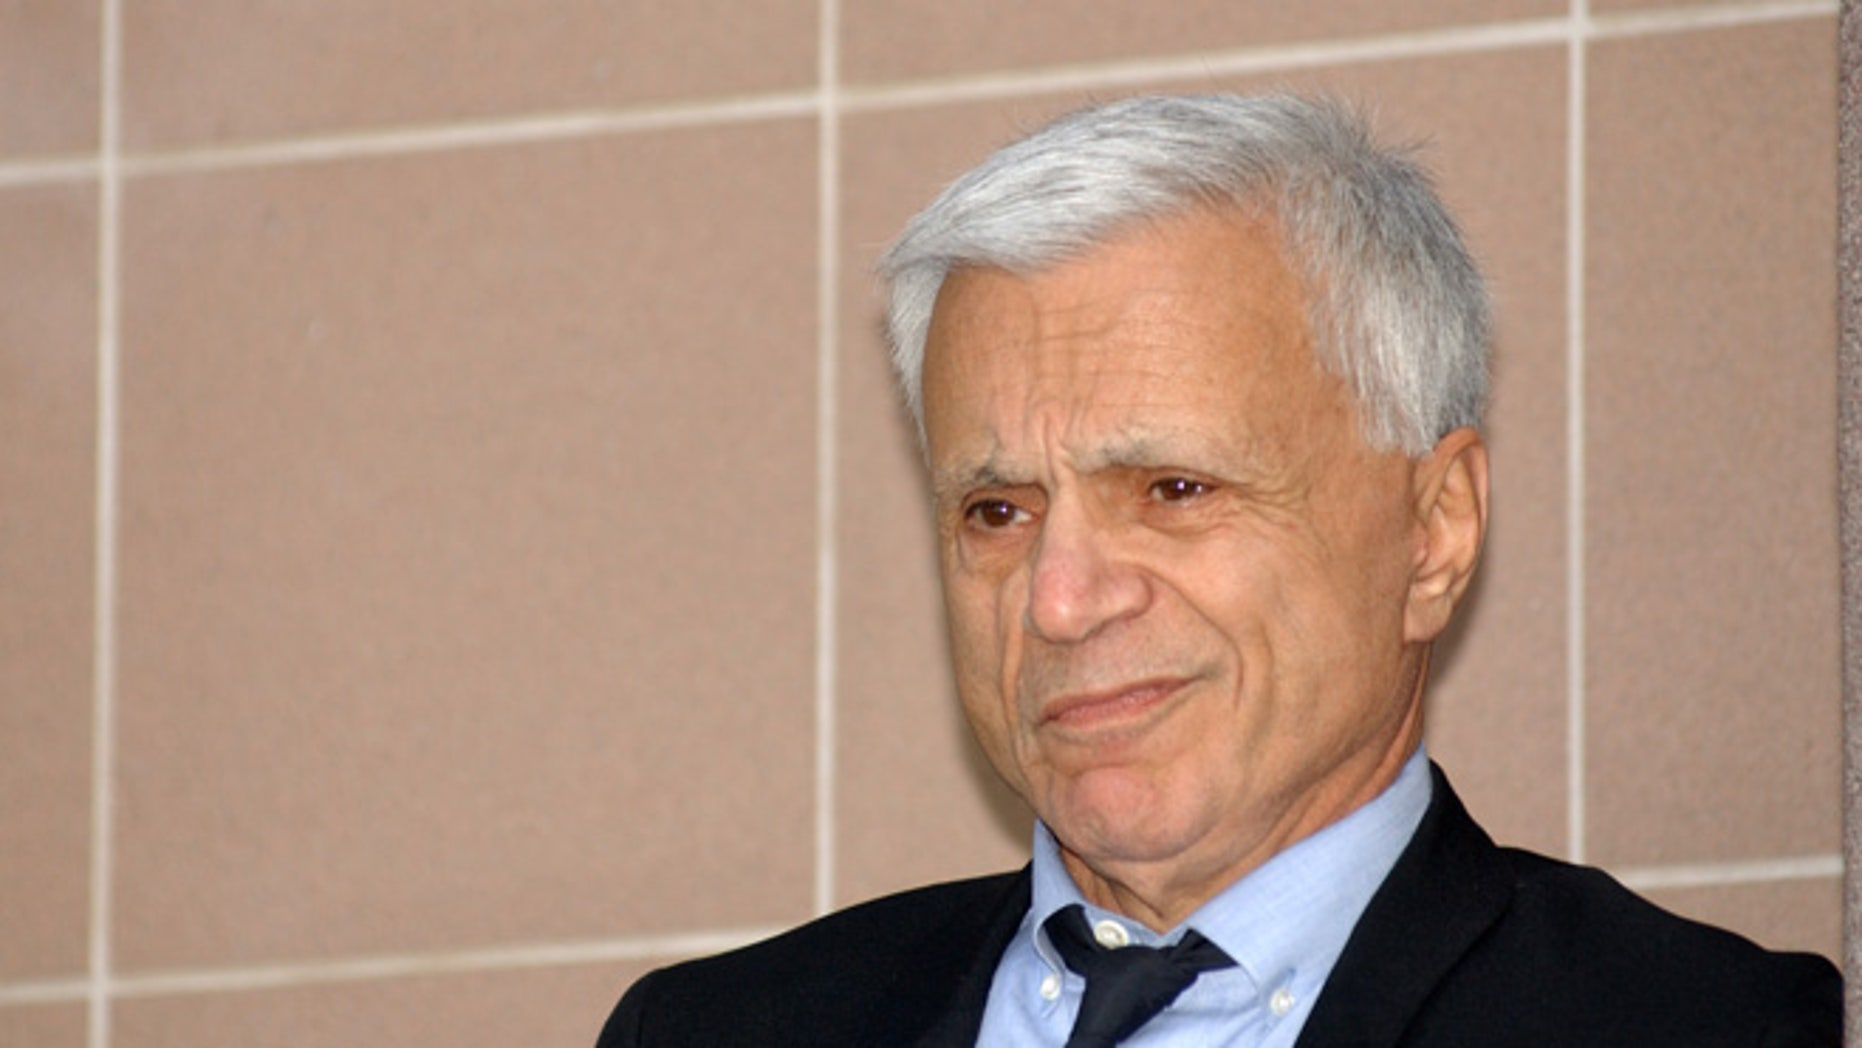 Robert Blake is reportedly set to marry for a third time.